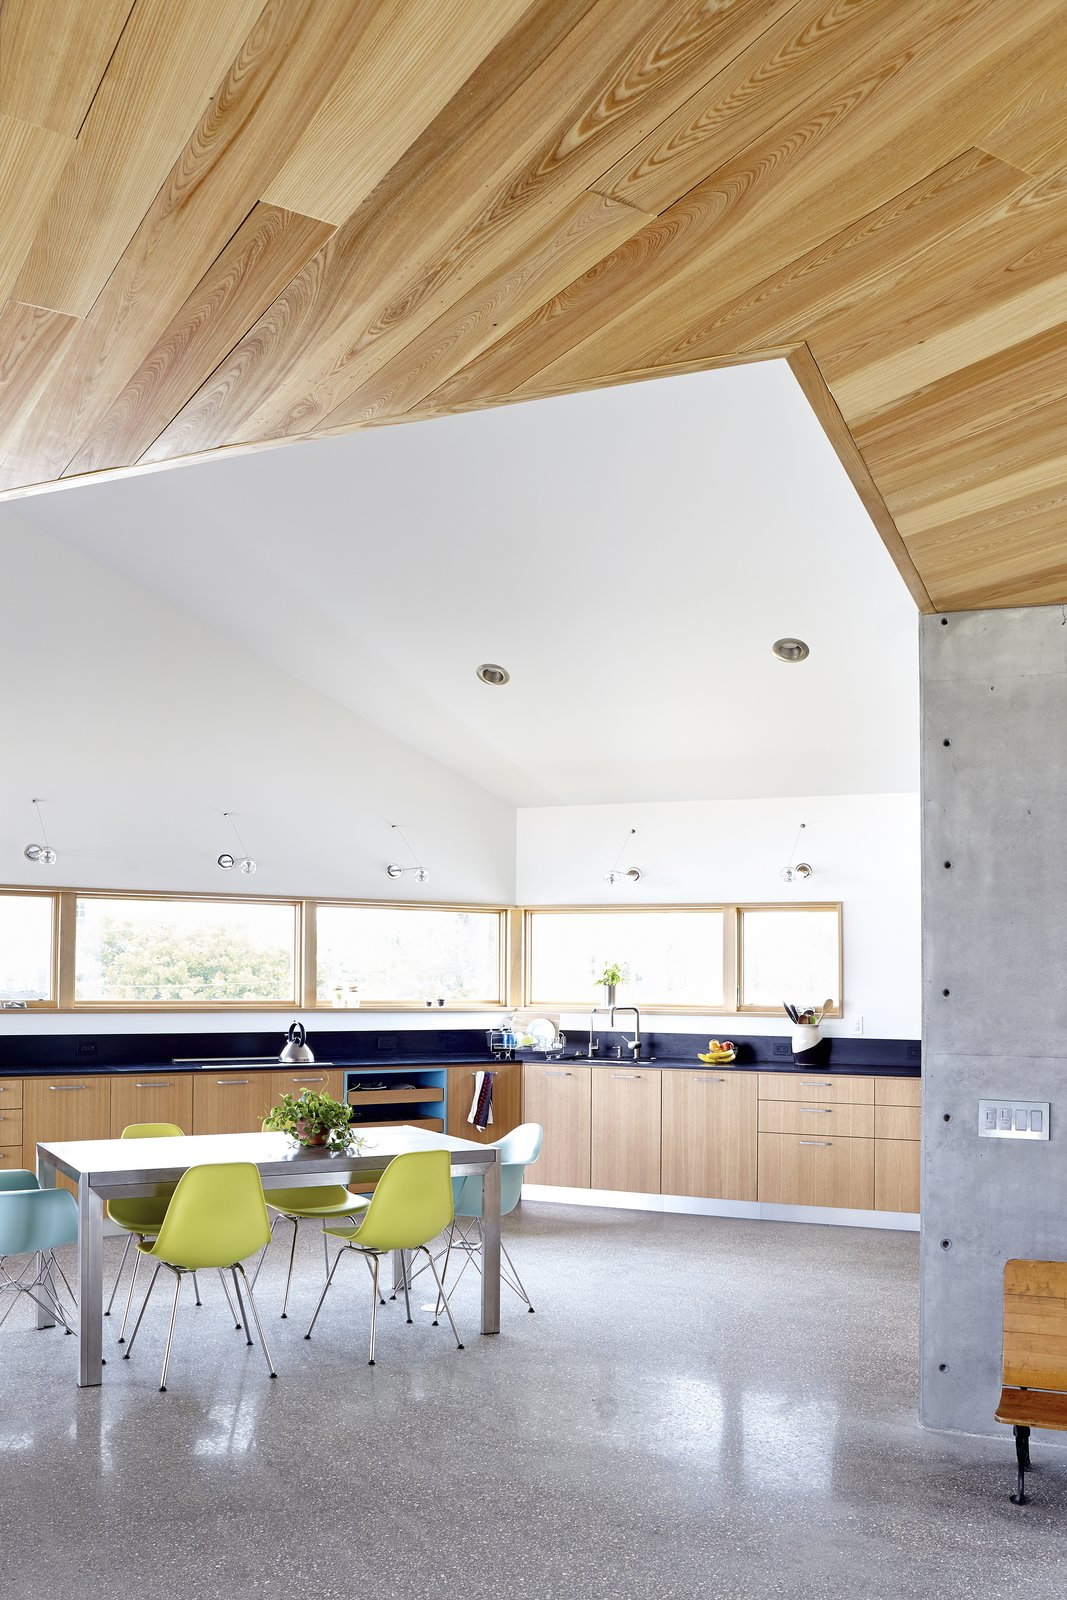 Tagged: Kitchen, Wood Cabinet, and Concrete Floor.  Seagrape House by Traction Architecture